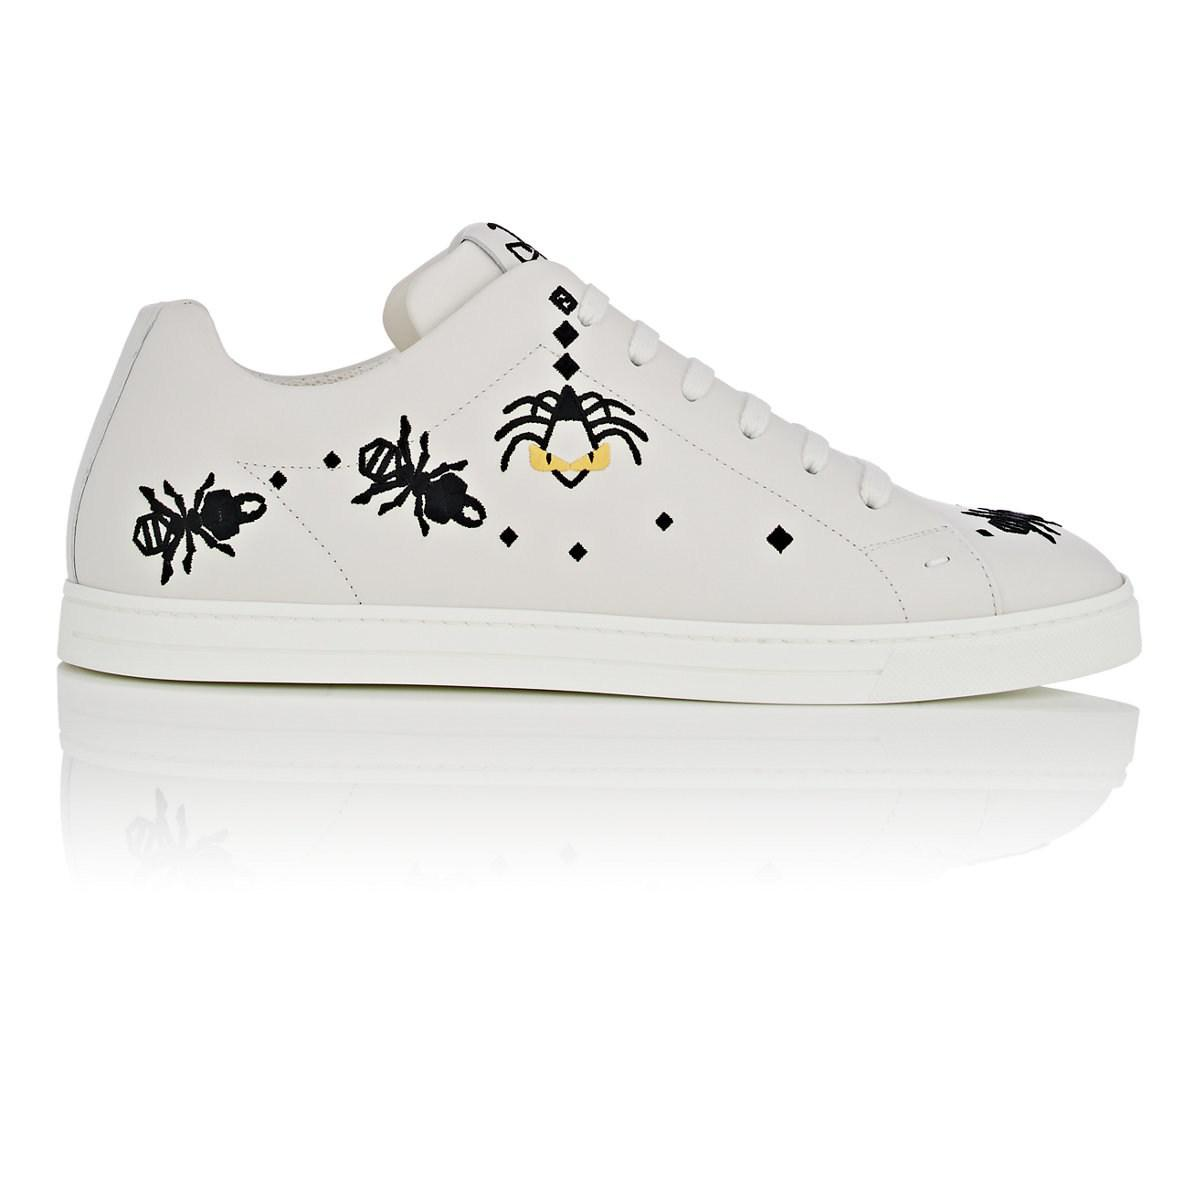 Mens Super Bugs Embroidered Leather Sneakers Fendi sYnDJ